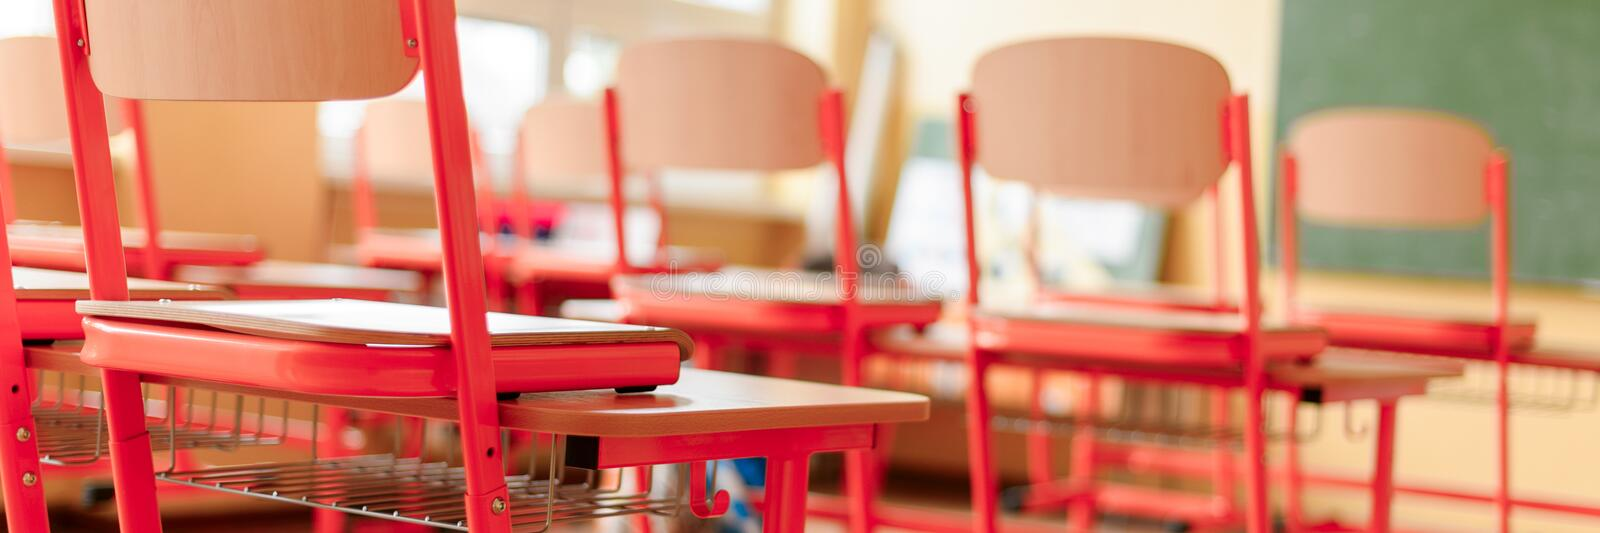 Empty classroom with school desks, chairs and blackboard. Education concept. Empty classroom with school desks, chairs and blackboard. Education concept royalty free stock photo